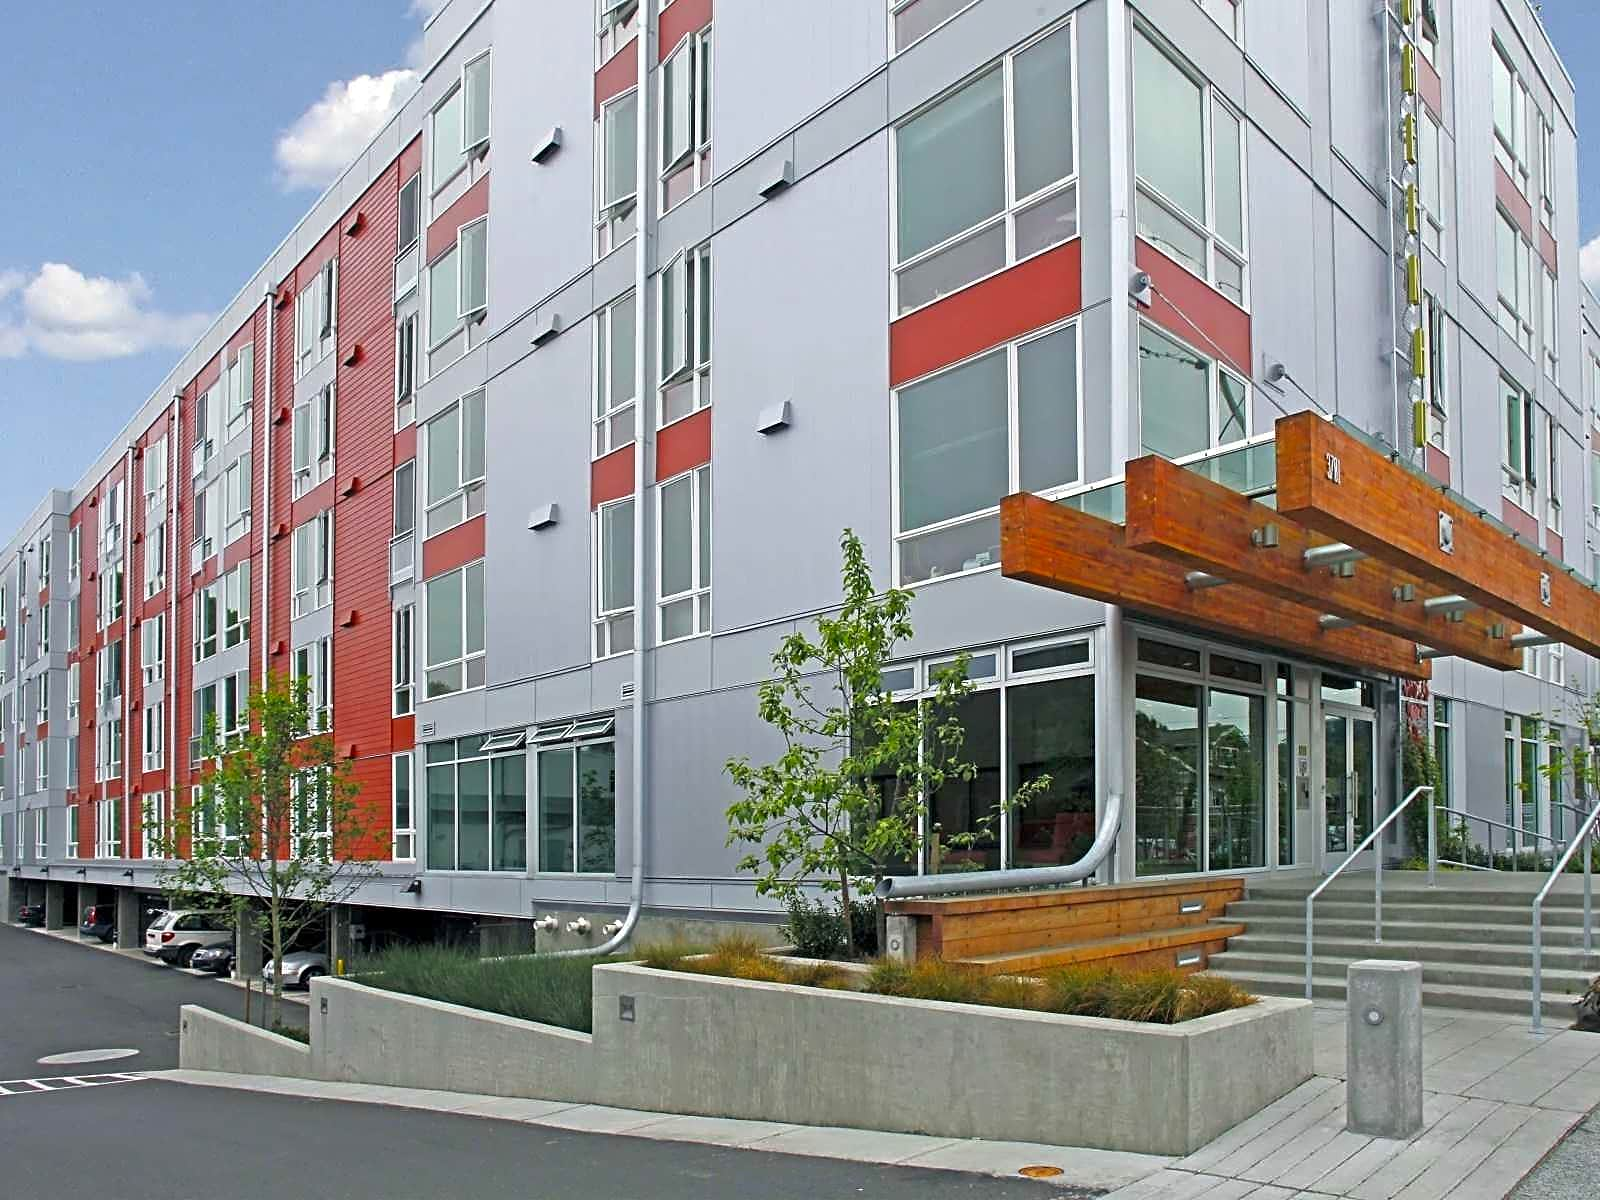 Greenhouse apartments seattle wa 98118 for Art institute of seattle parking garage